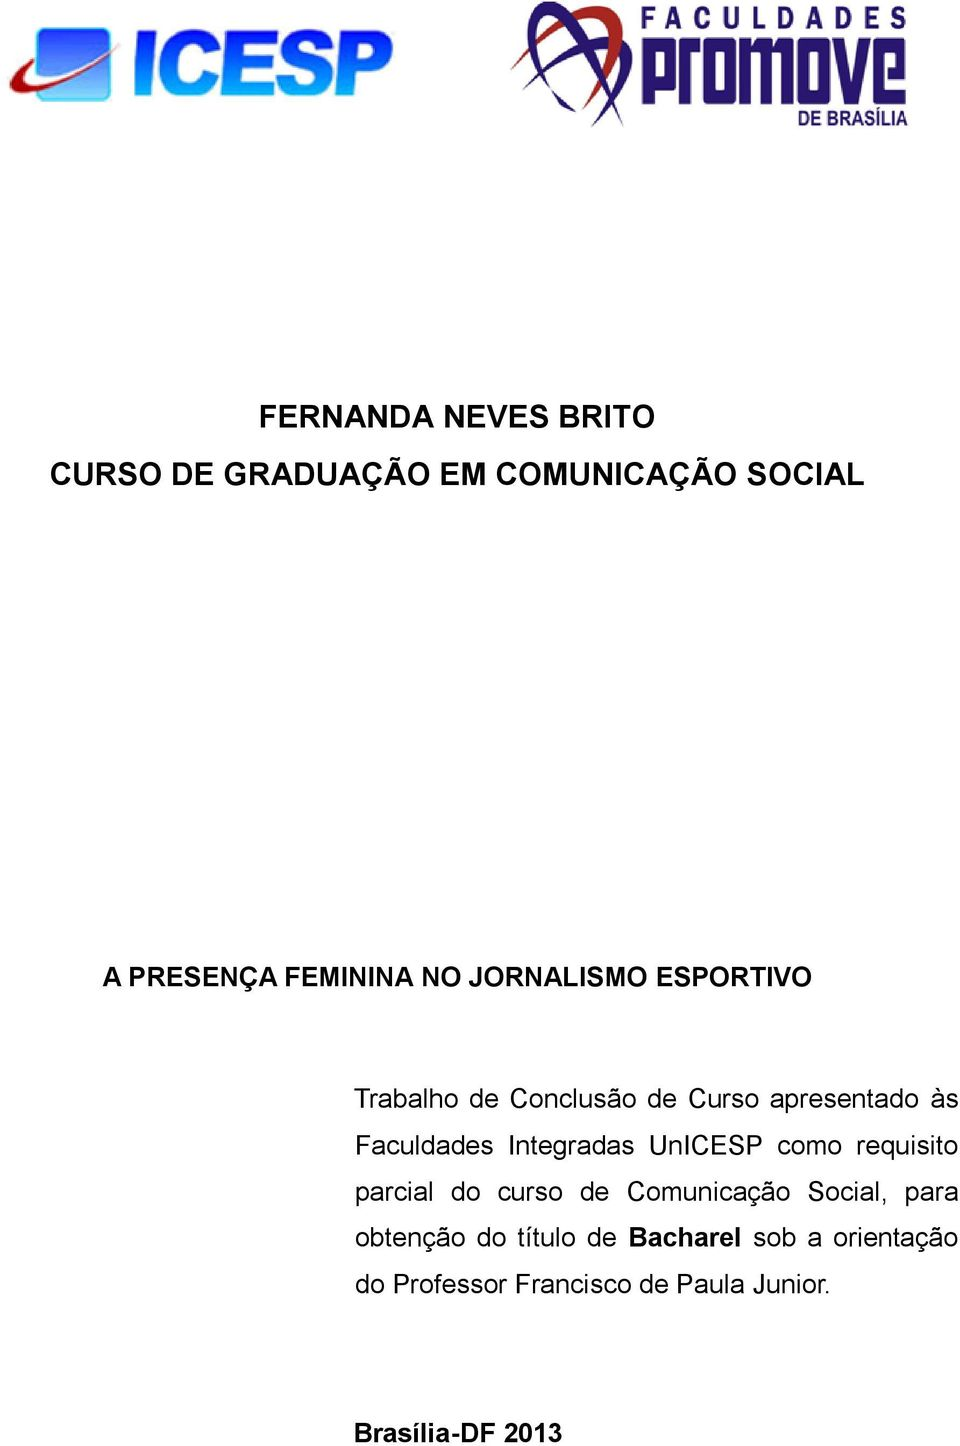 Integradas UnICESP como requisito parcial do curso de Comunicação Social, para